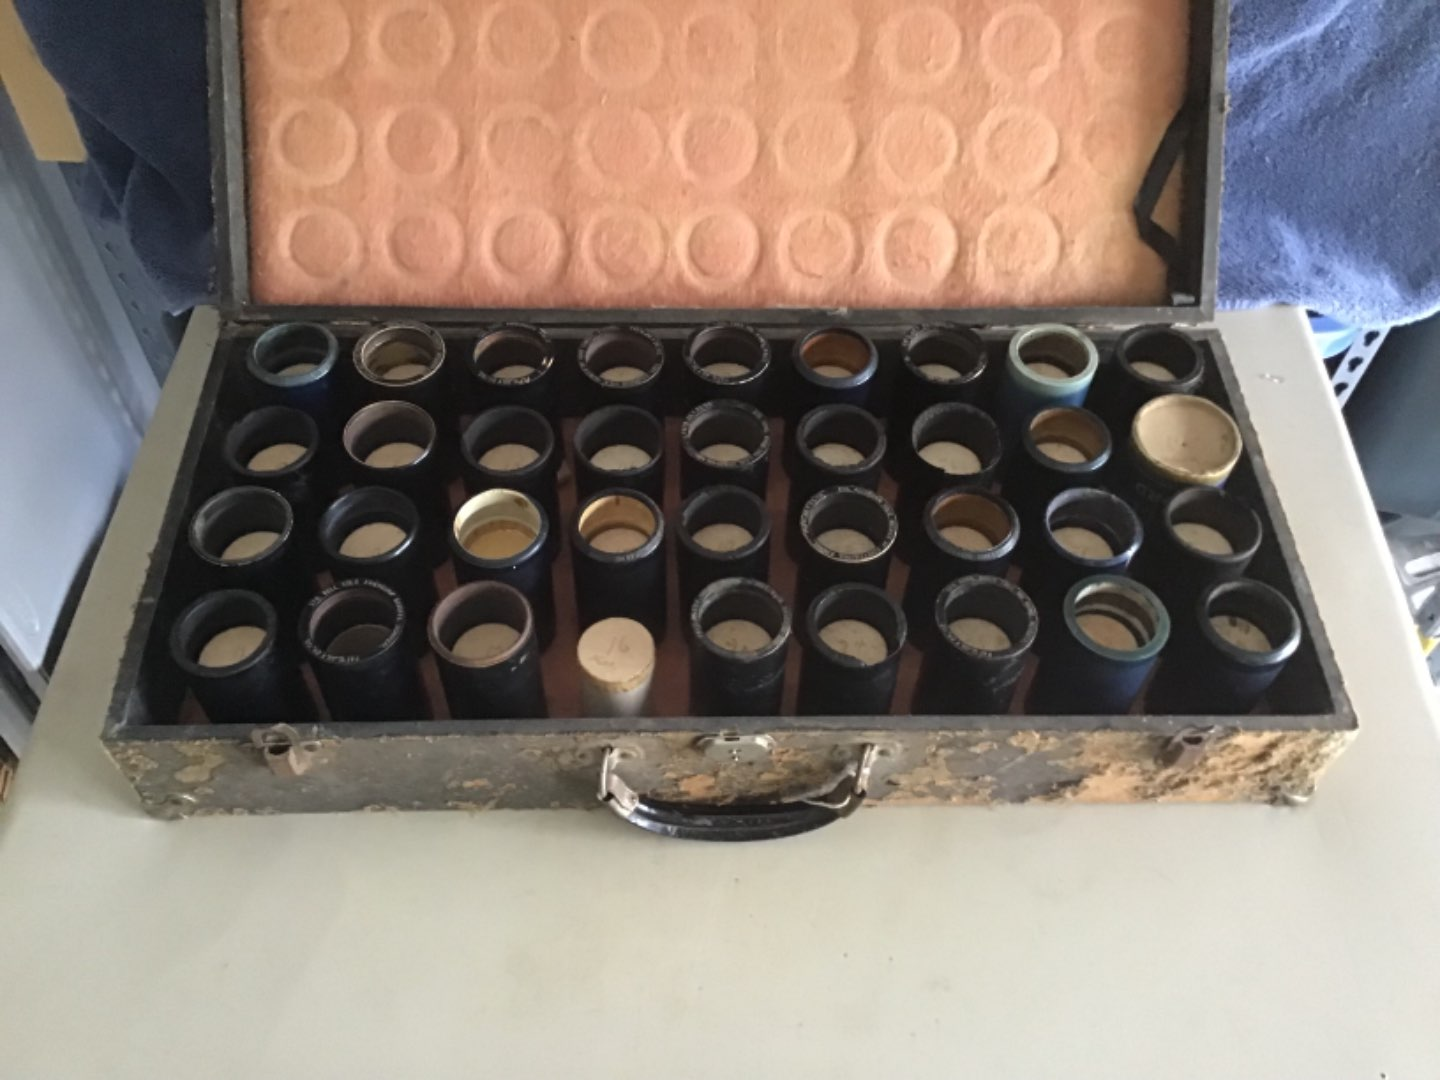 Lot # 370 ANTIQUE (@1902) EDISON Phonograph Cylinders (34 count) in Original Case